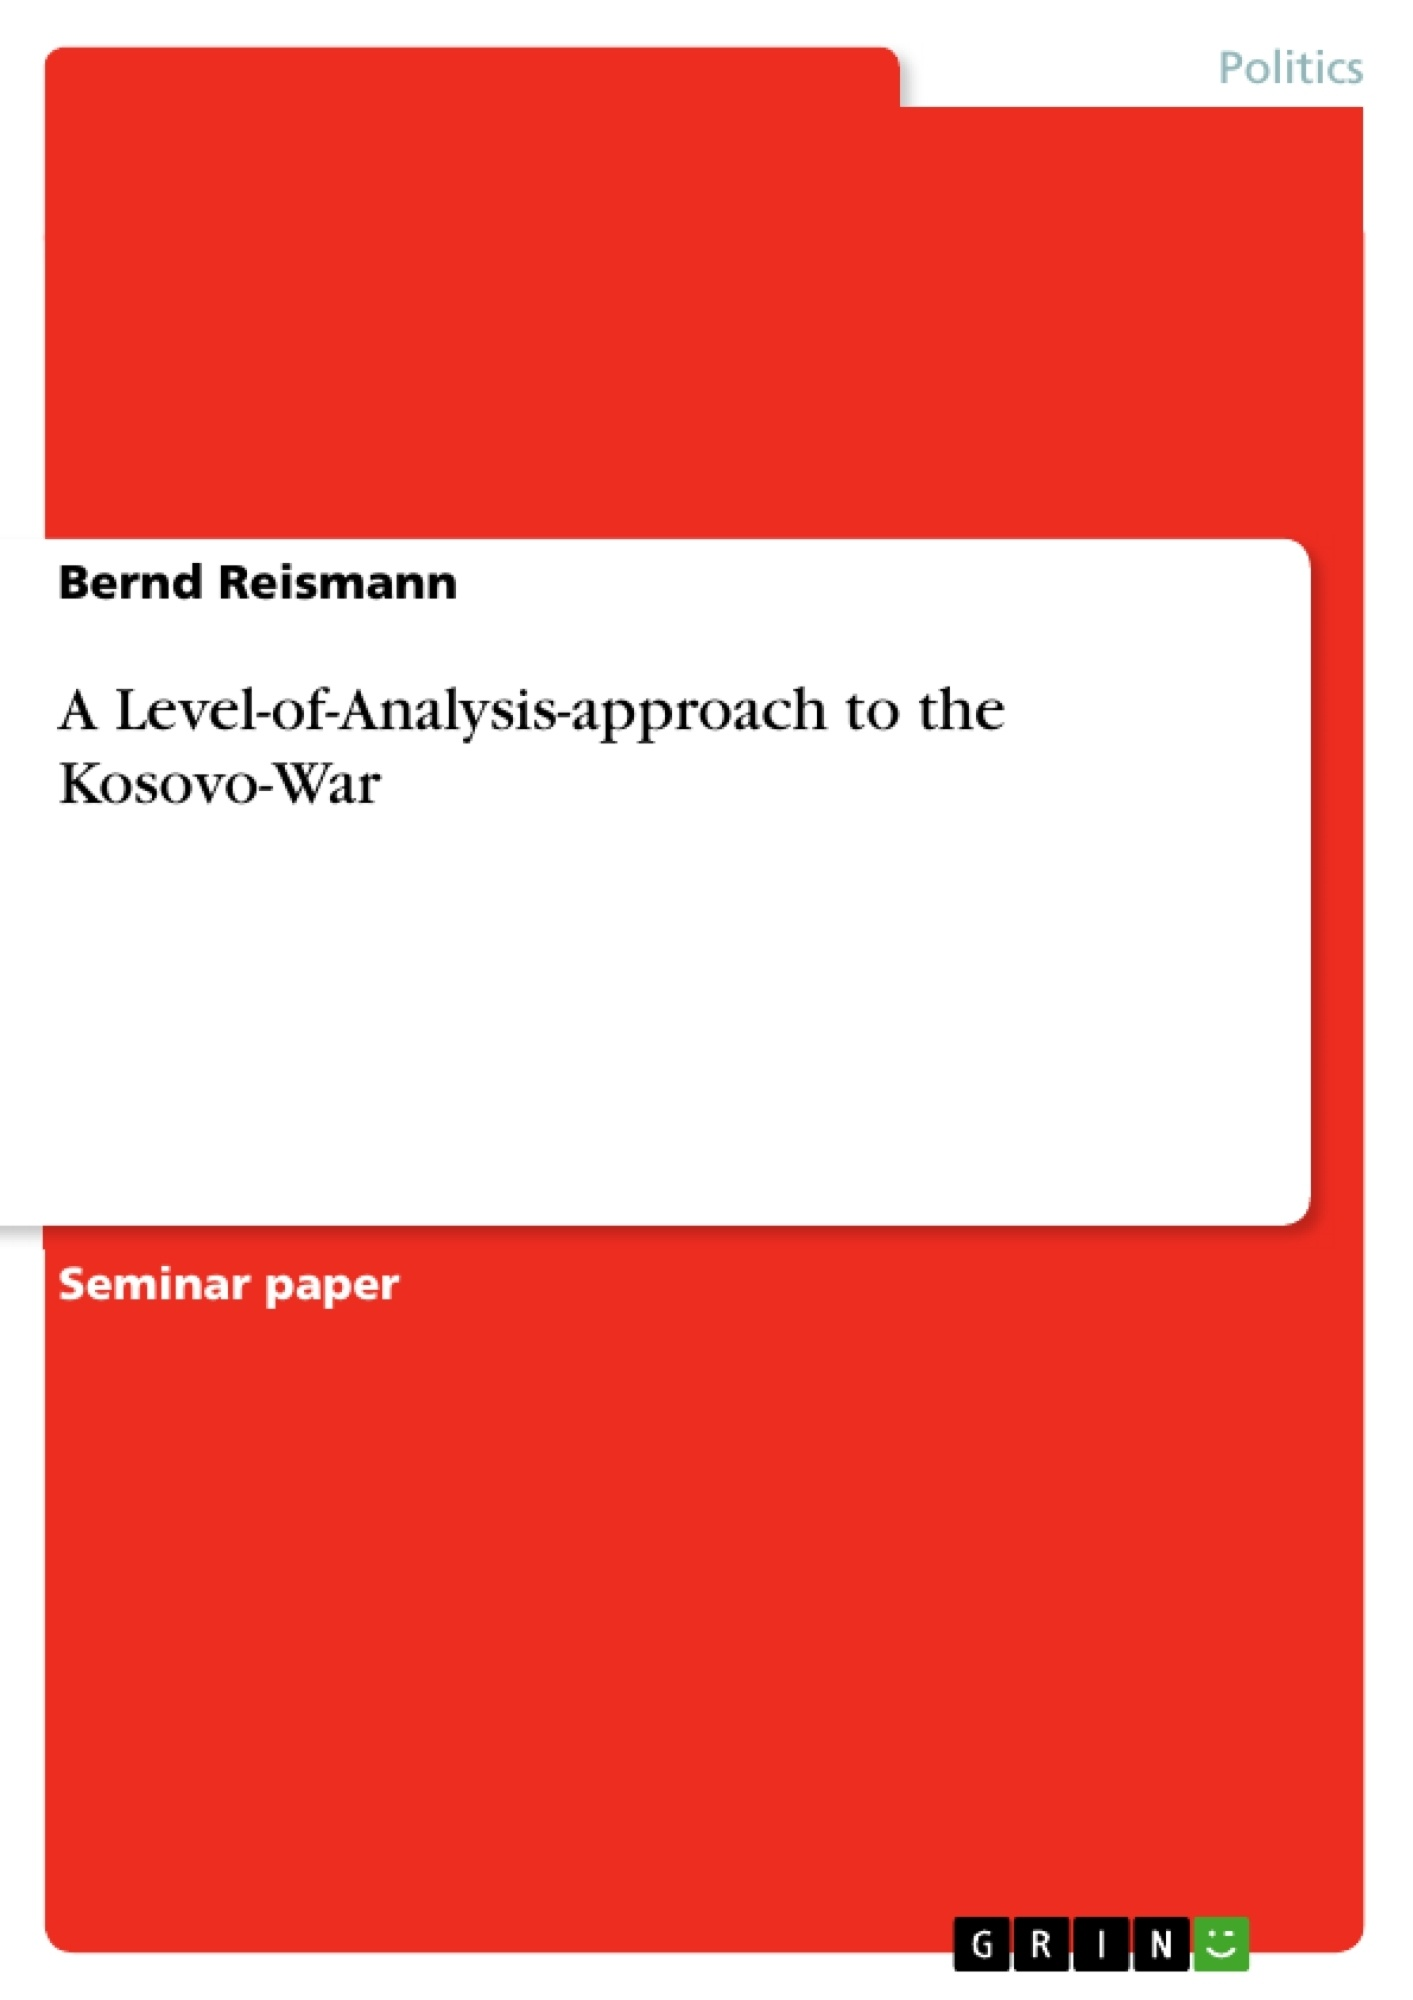 Title: A Level-of-Analysis-approach to the Kosovo-War